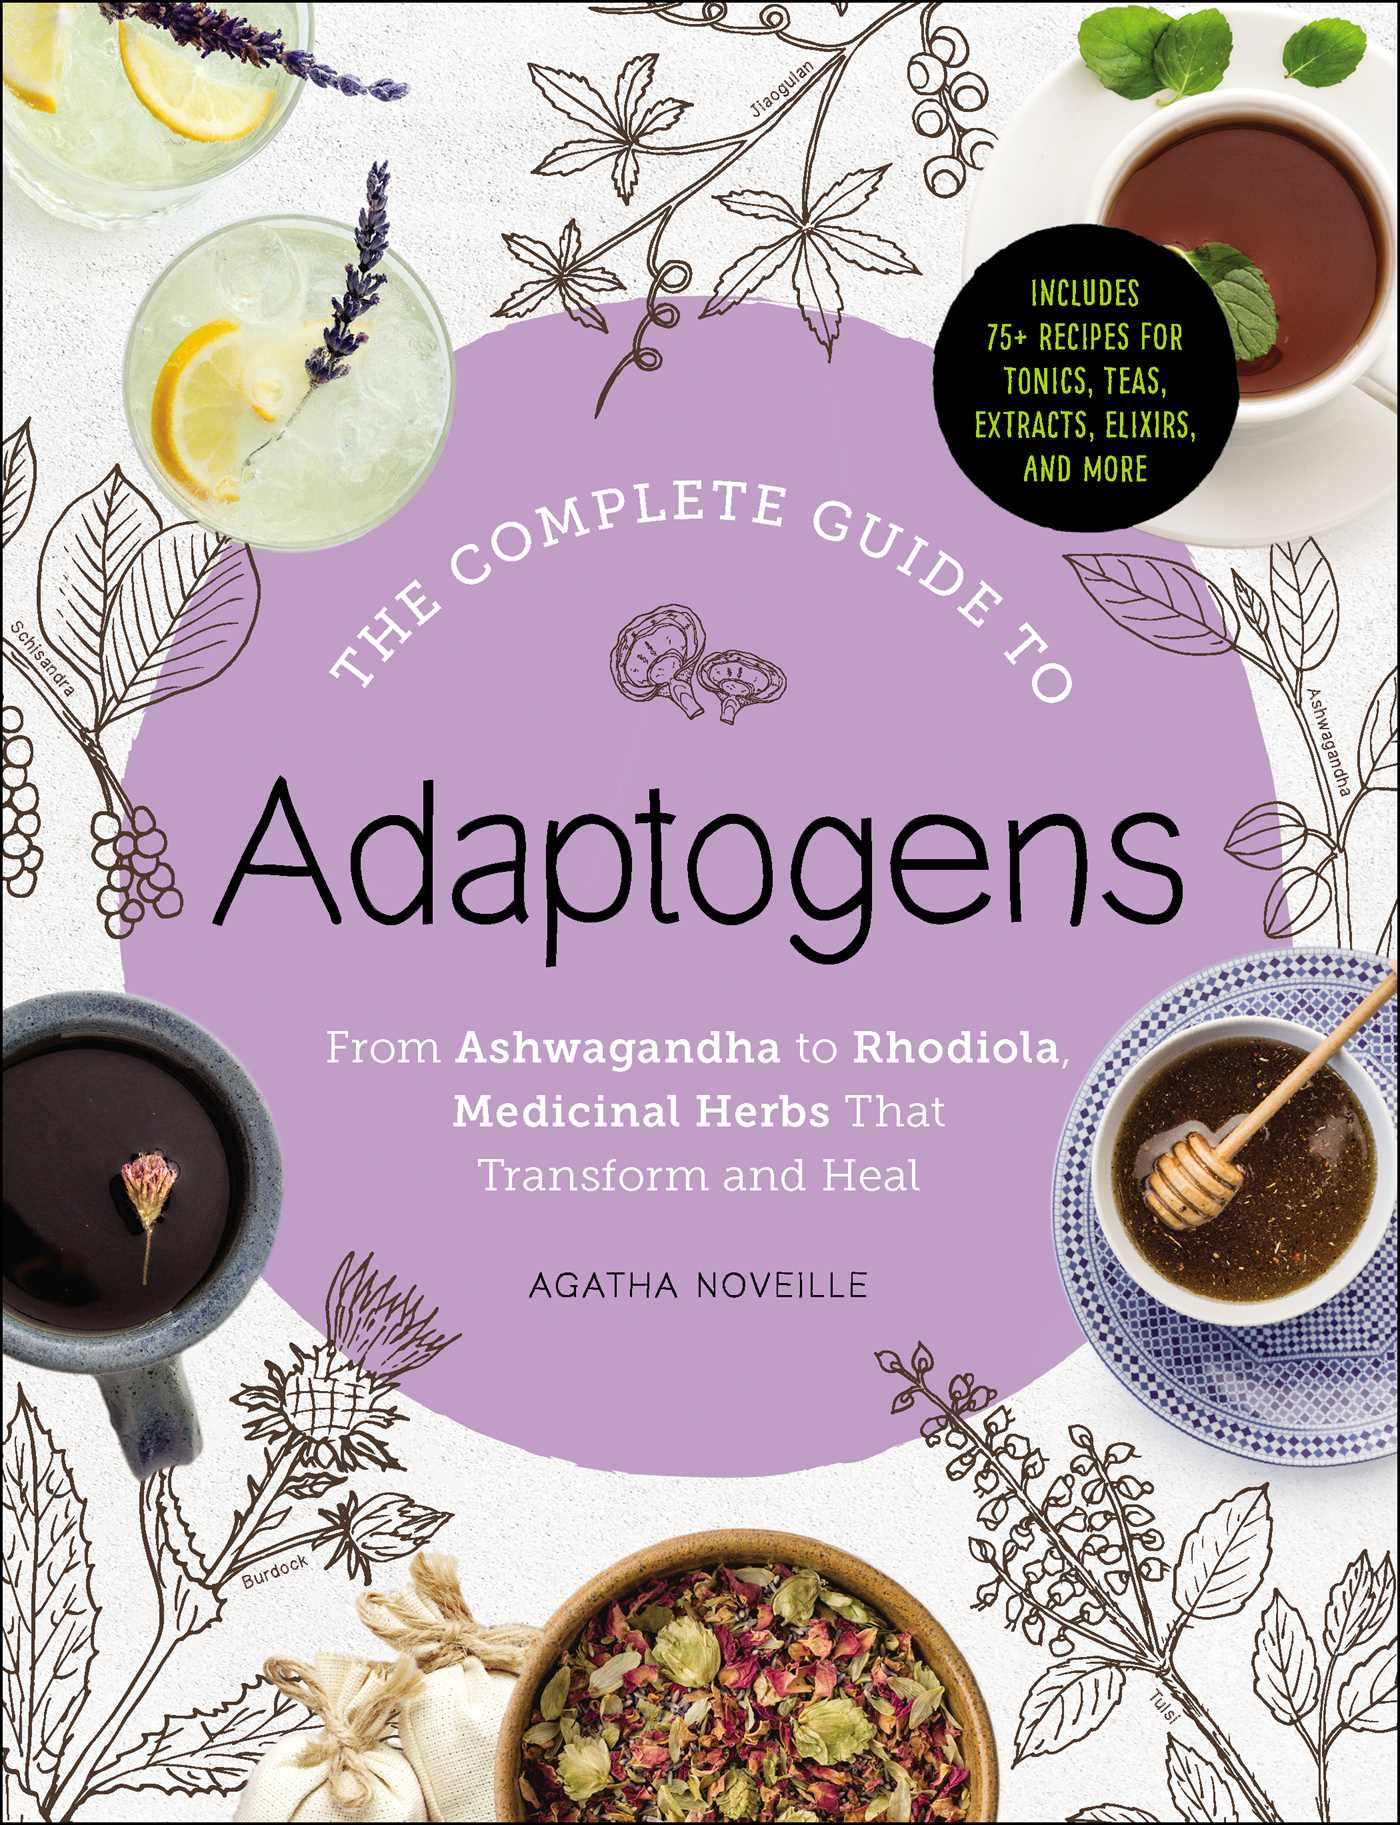 The complete guide to adaptogens 9781507207857 hr